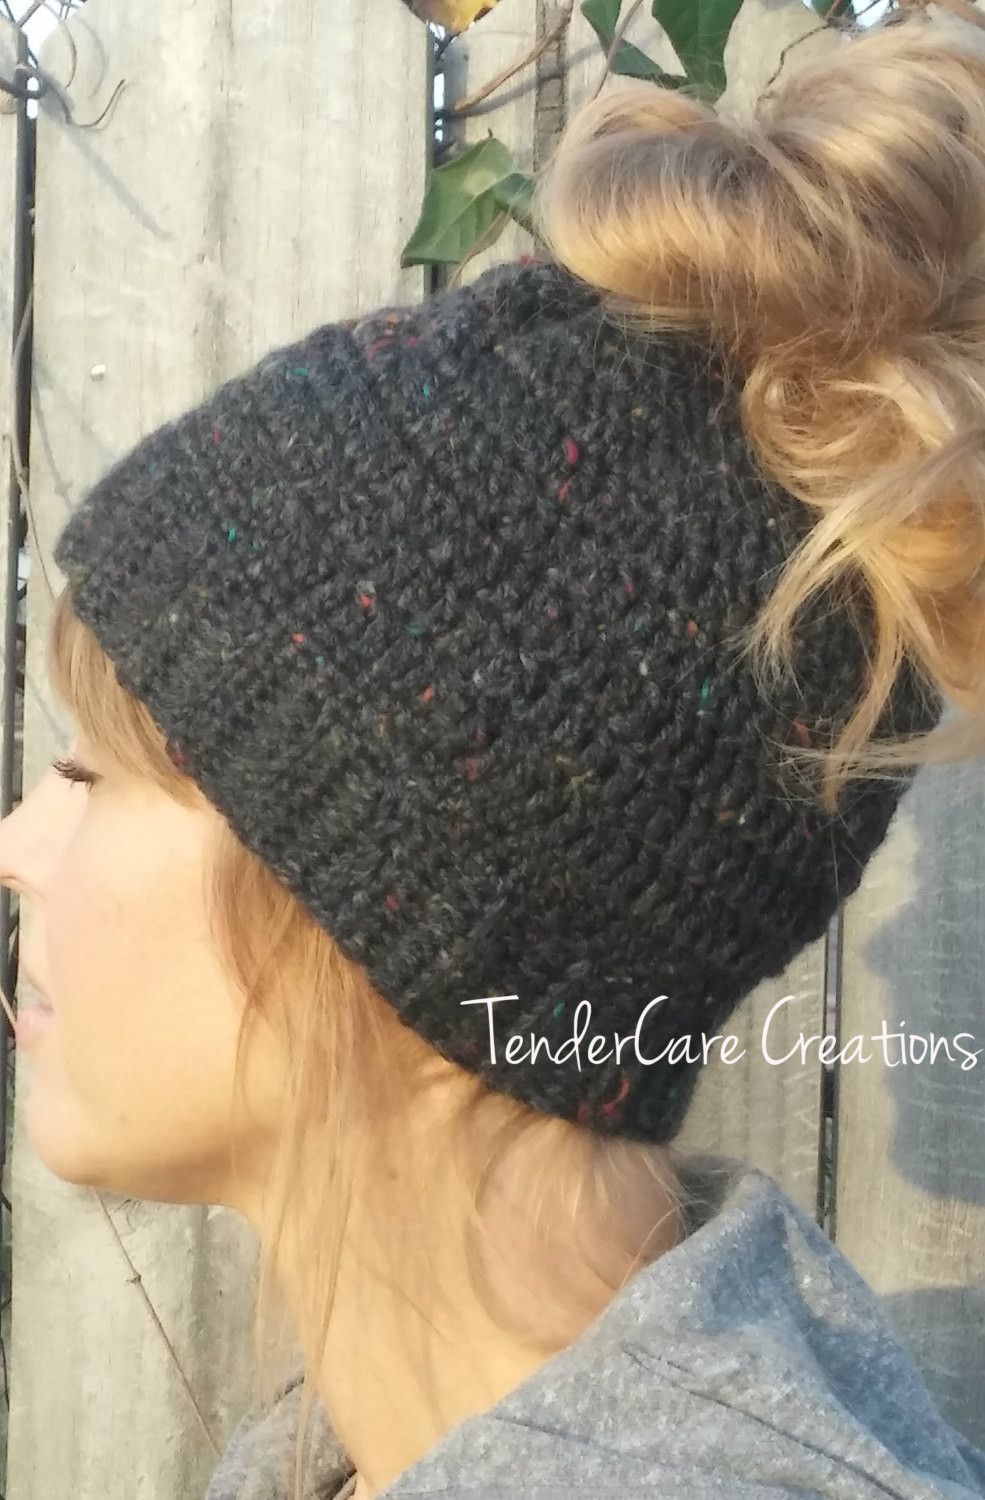 Crochet Messy Bun Beanie Lovely Crochet Messy Bun Beanie Ponytail Beanie Crochet Runners Of New 43 Photos Crochet Messy Bun Beanie